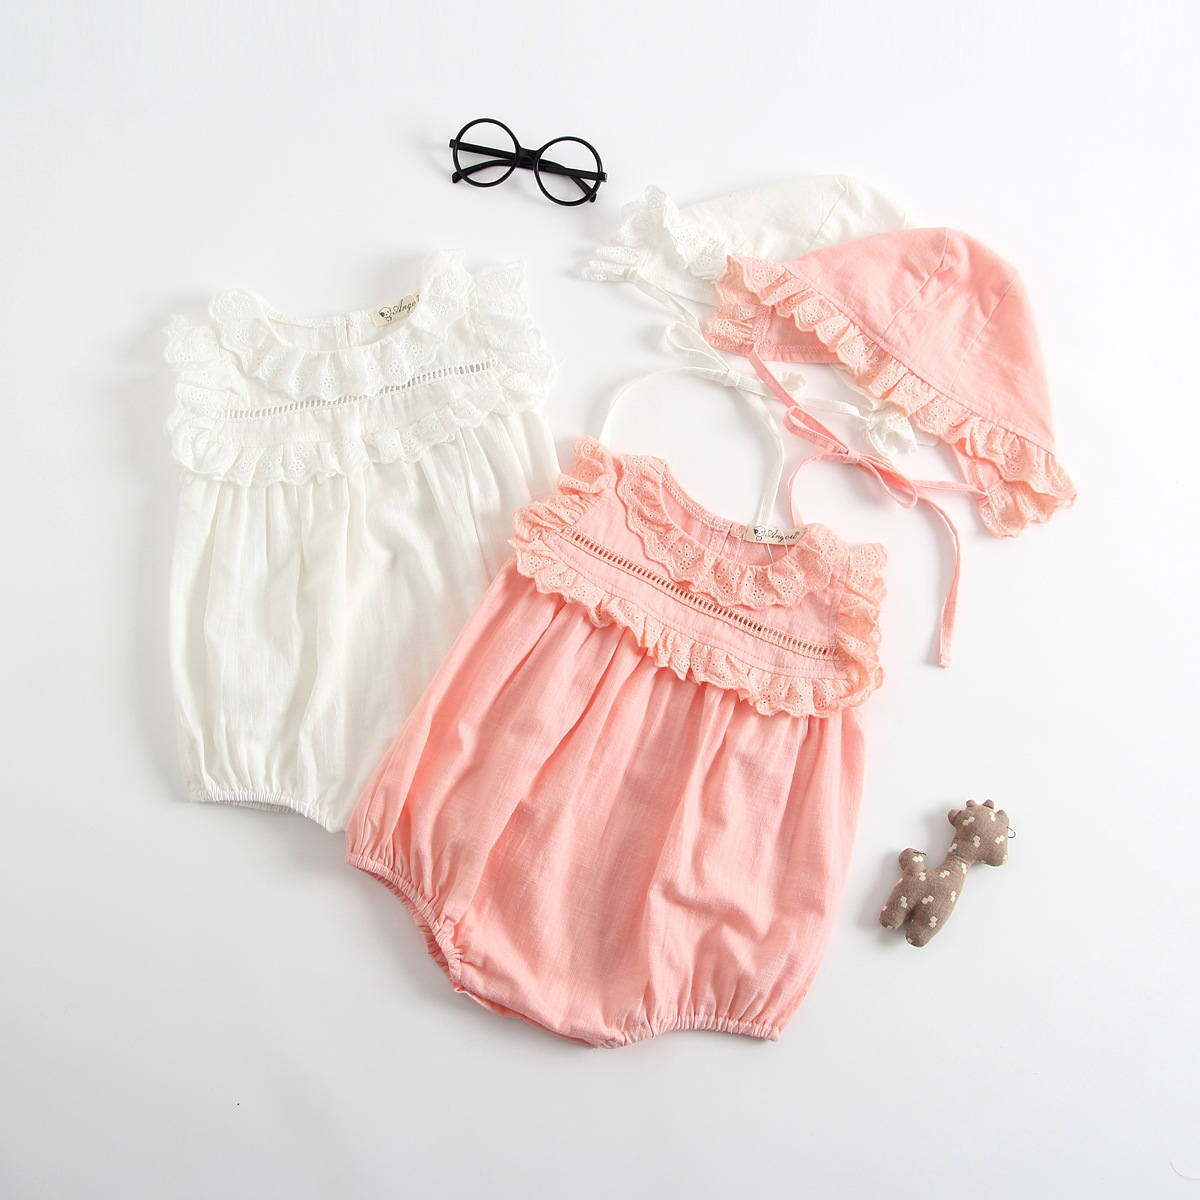 Baby girls rompers 2018 summer Newborn jumpsuit princess girls clothes sleeveless baby Rompers with hat roupas de bebe